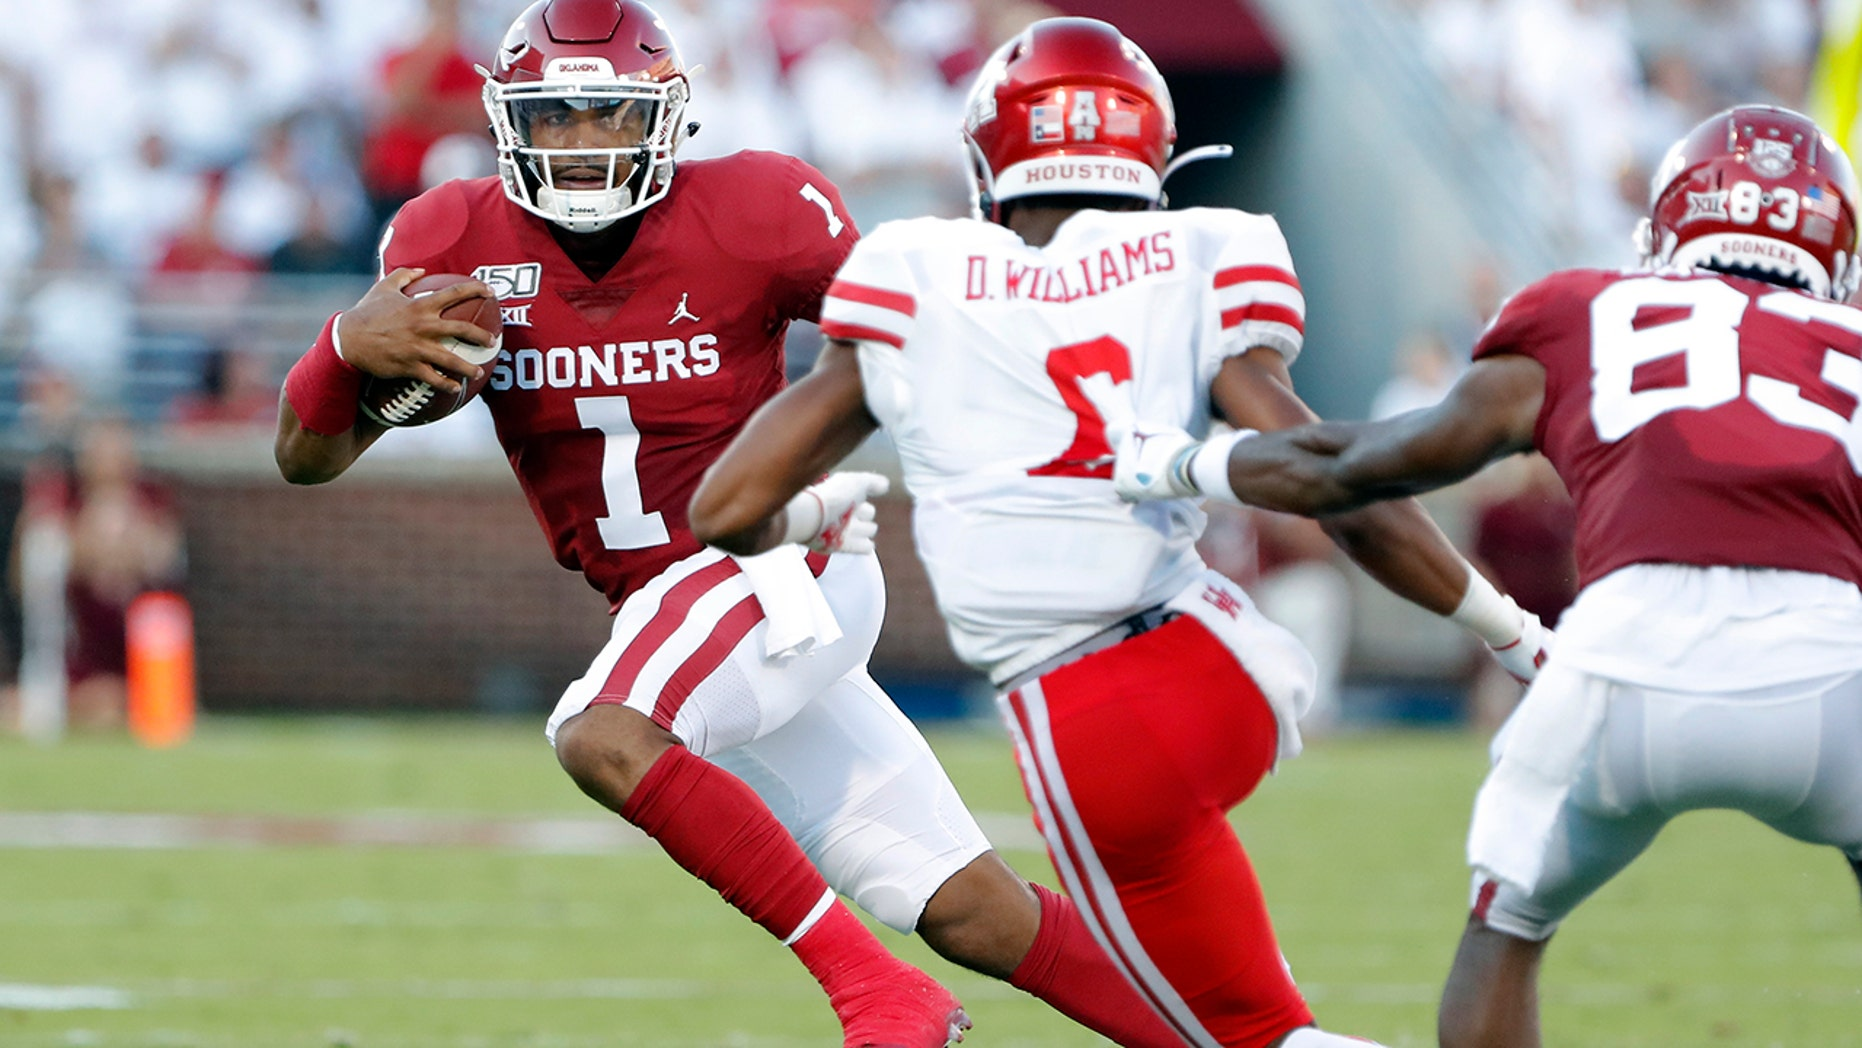 Oklahoma quarterback Jalen Hurts (1) runs the ball against Houston during the first half of an NCAA college football game in Norman, Okla., Sunday, Sept. 1, 2019. (AP Photo/Alonzo Adams)